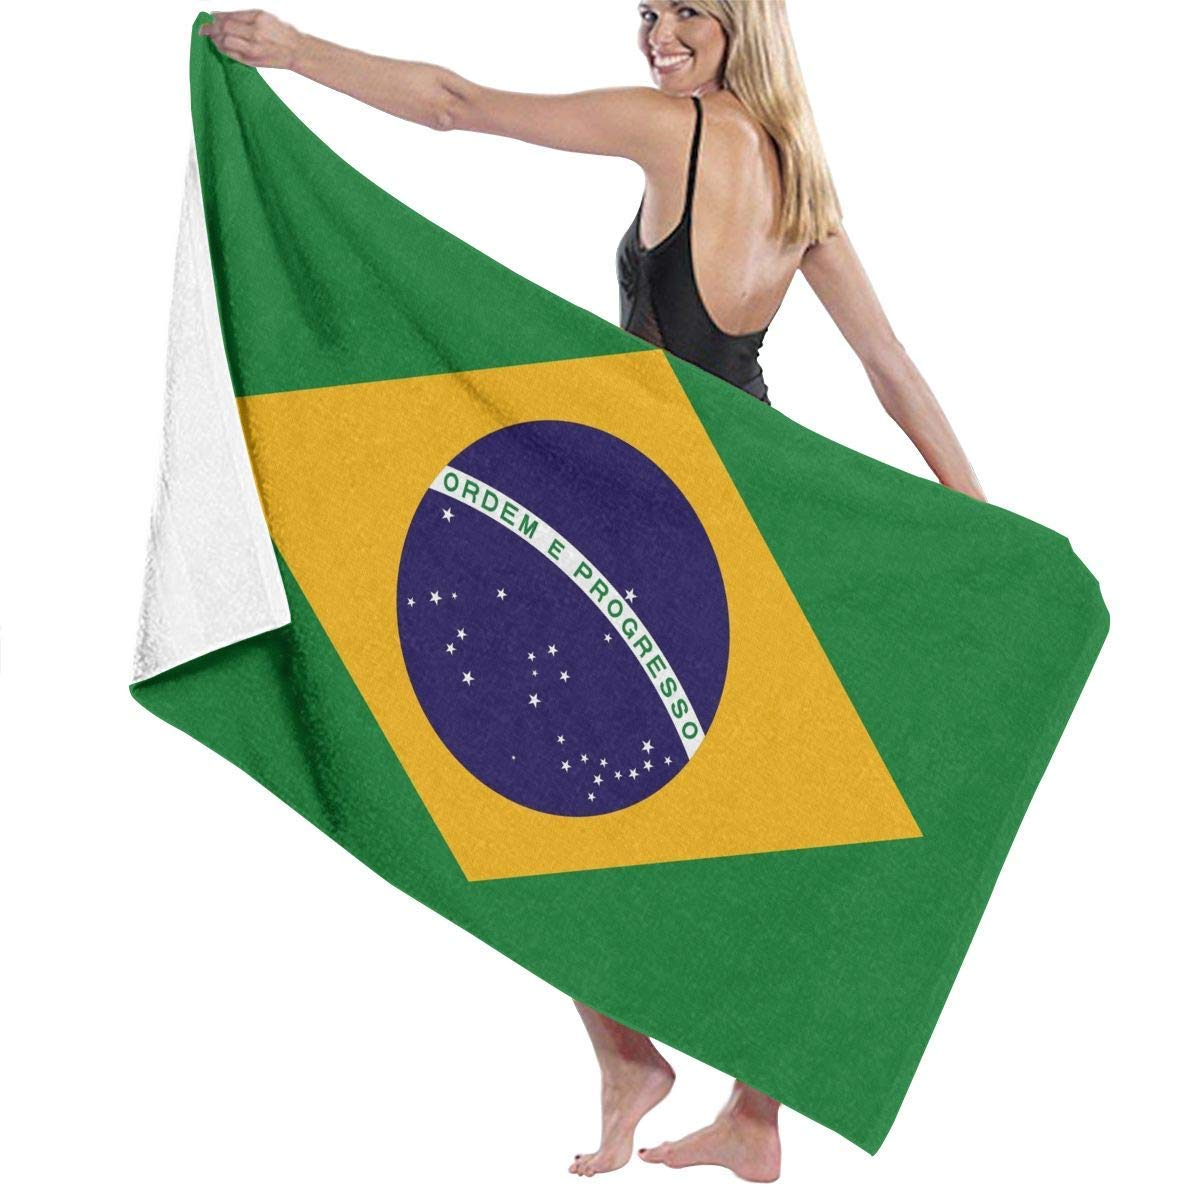 Amazon.com: LONSANT Brazil Flag Microfiber Beach Towels - Travel, Compact Sports, Camping, Surf - Pool Towels - Sand Free, Quick Dry, Extra Absorbent (32 x ...